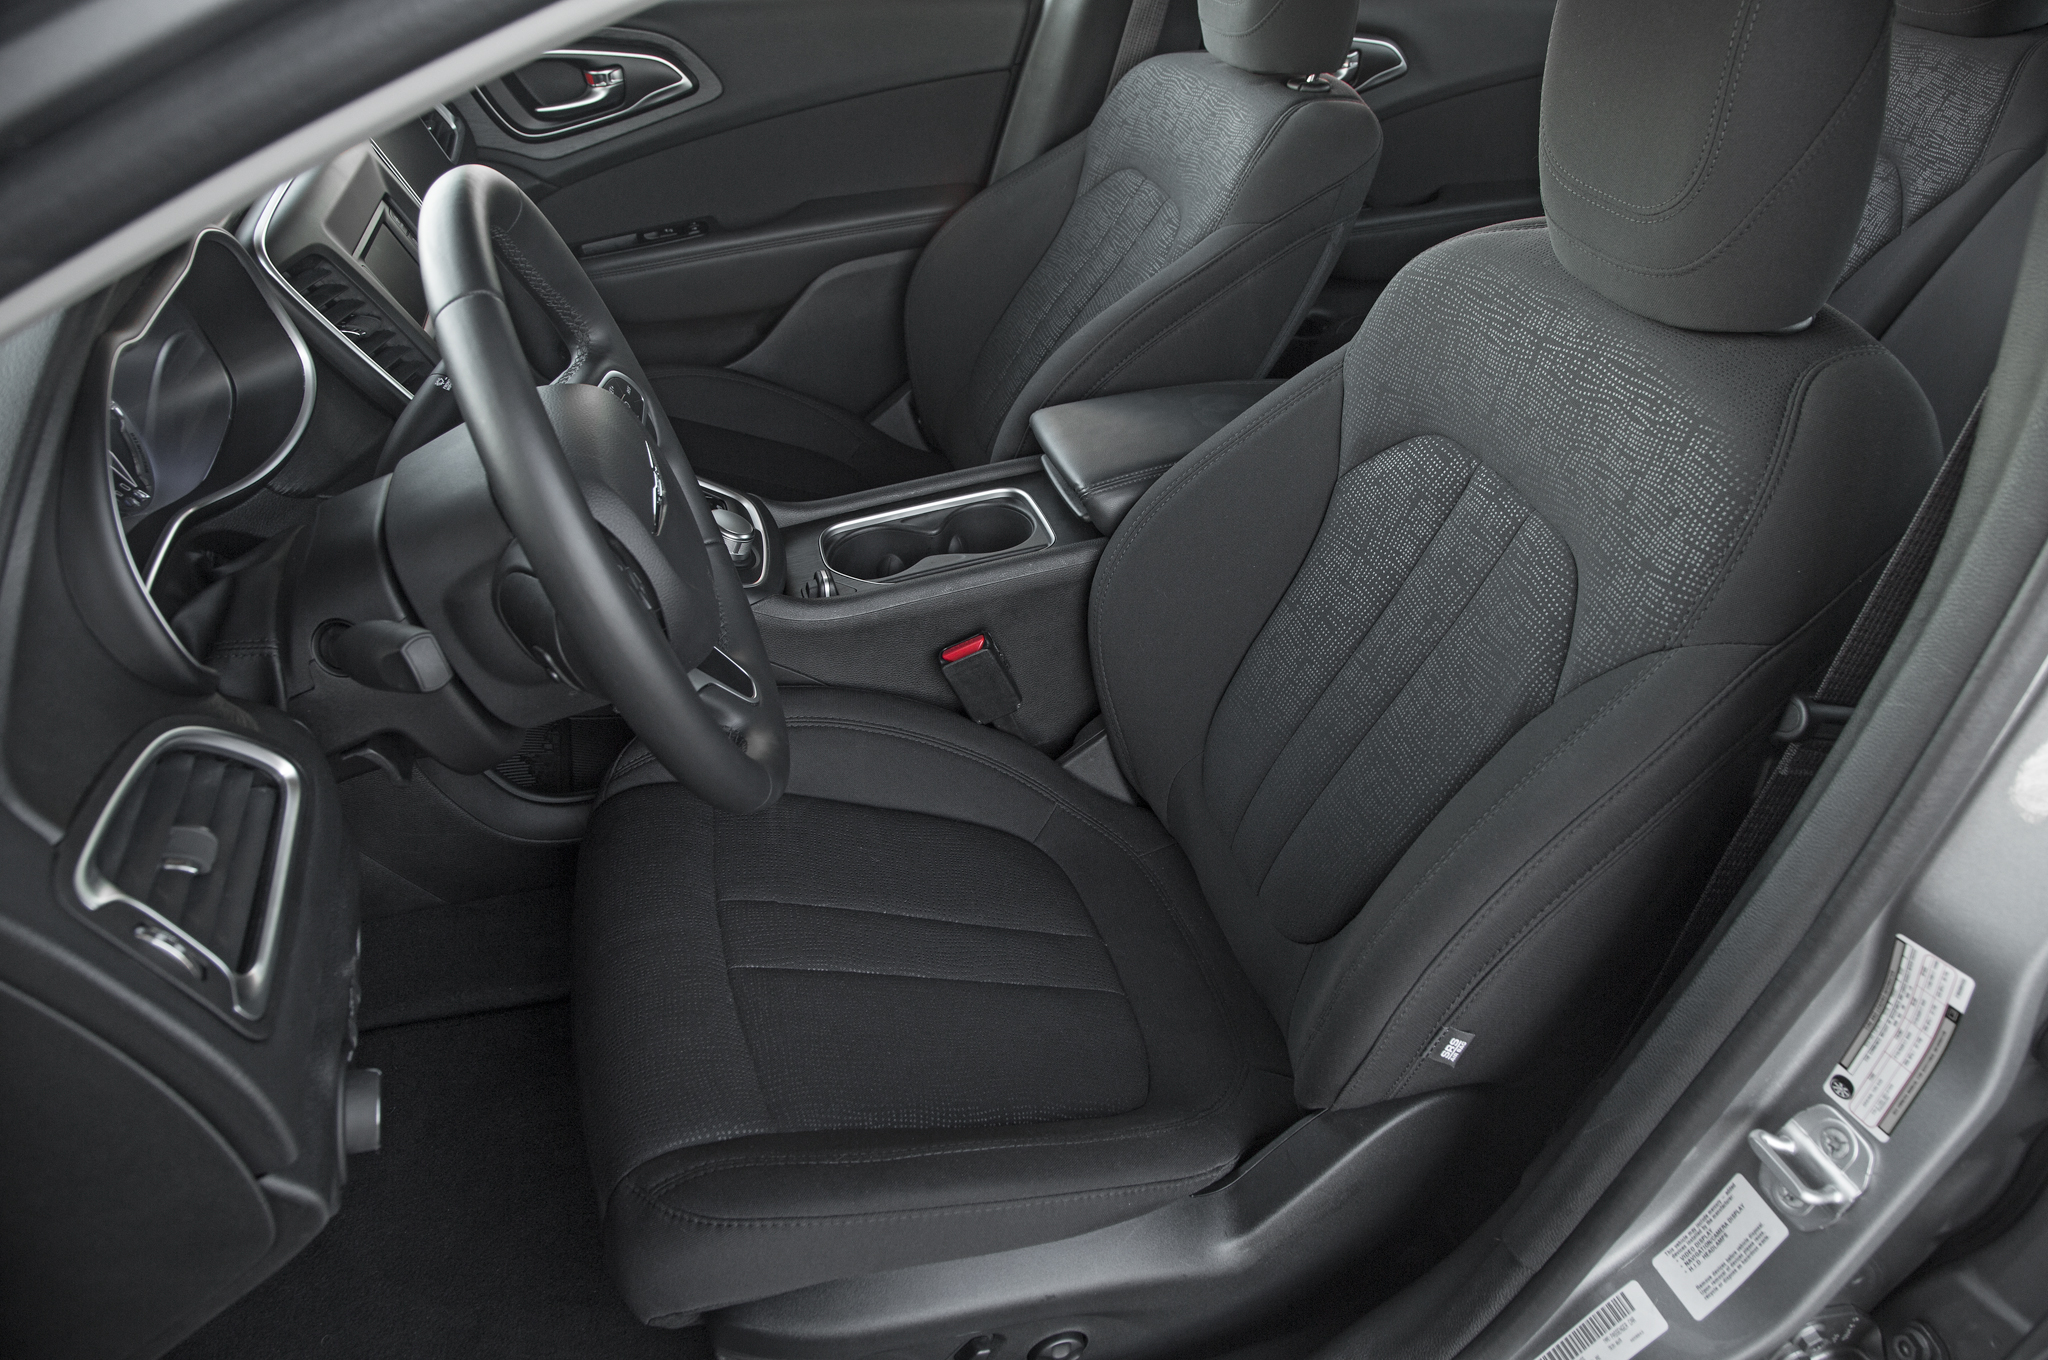 2015 Chrysler 200 Front Interior